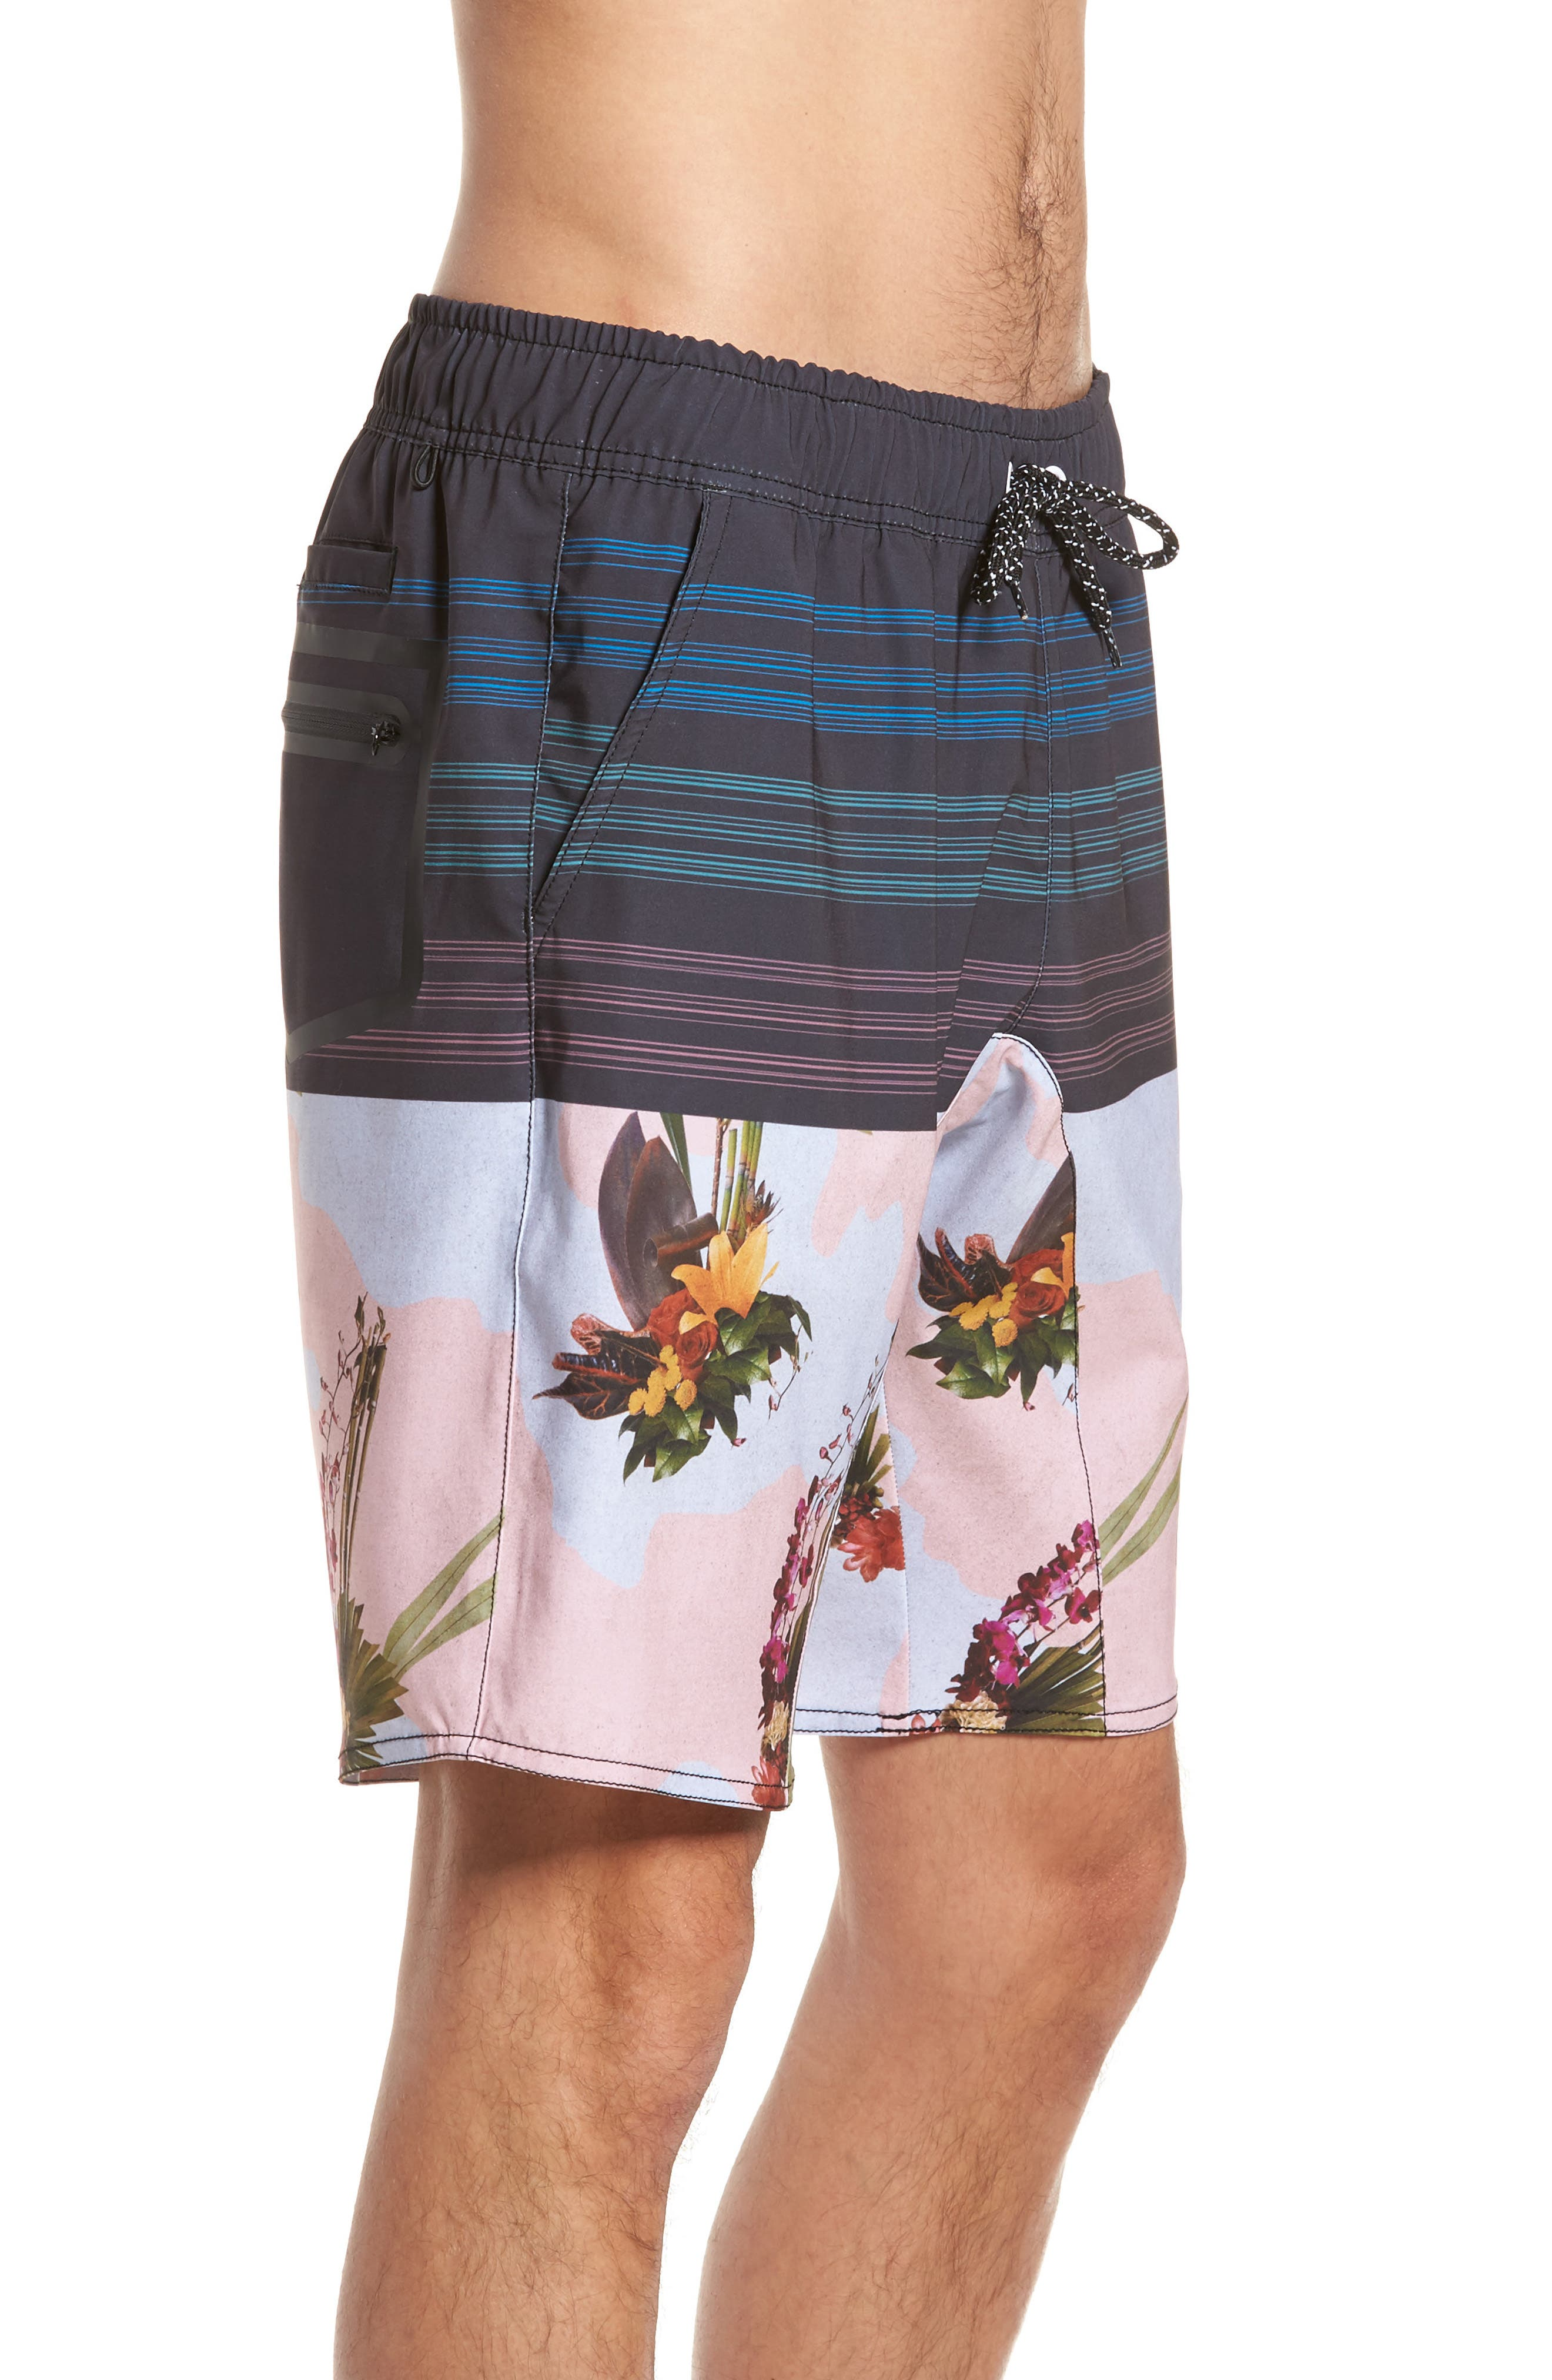 Oasis Swim Shorts,                             Alternate thumbnail 3, color,                             001